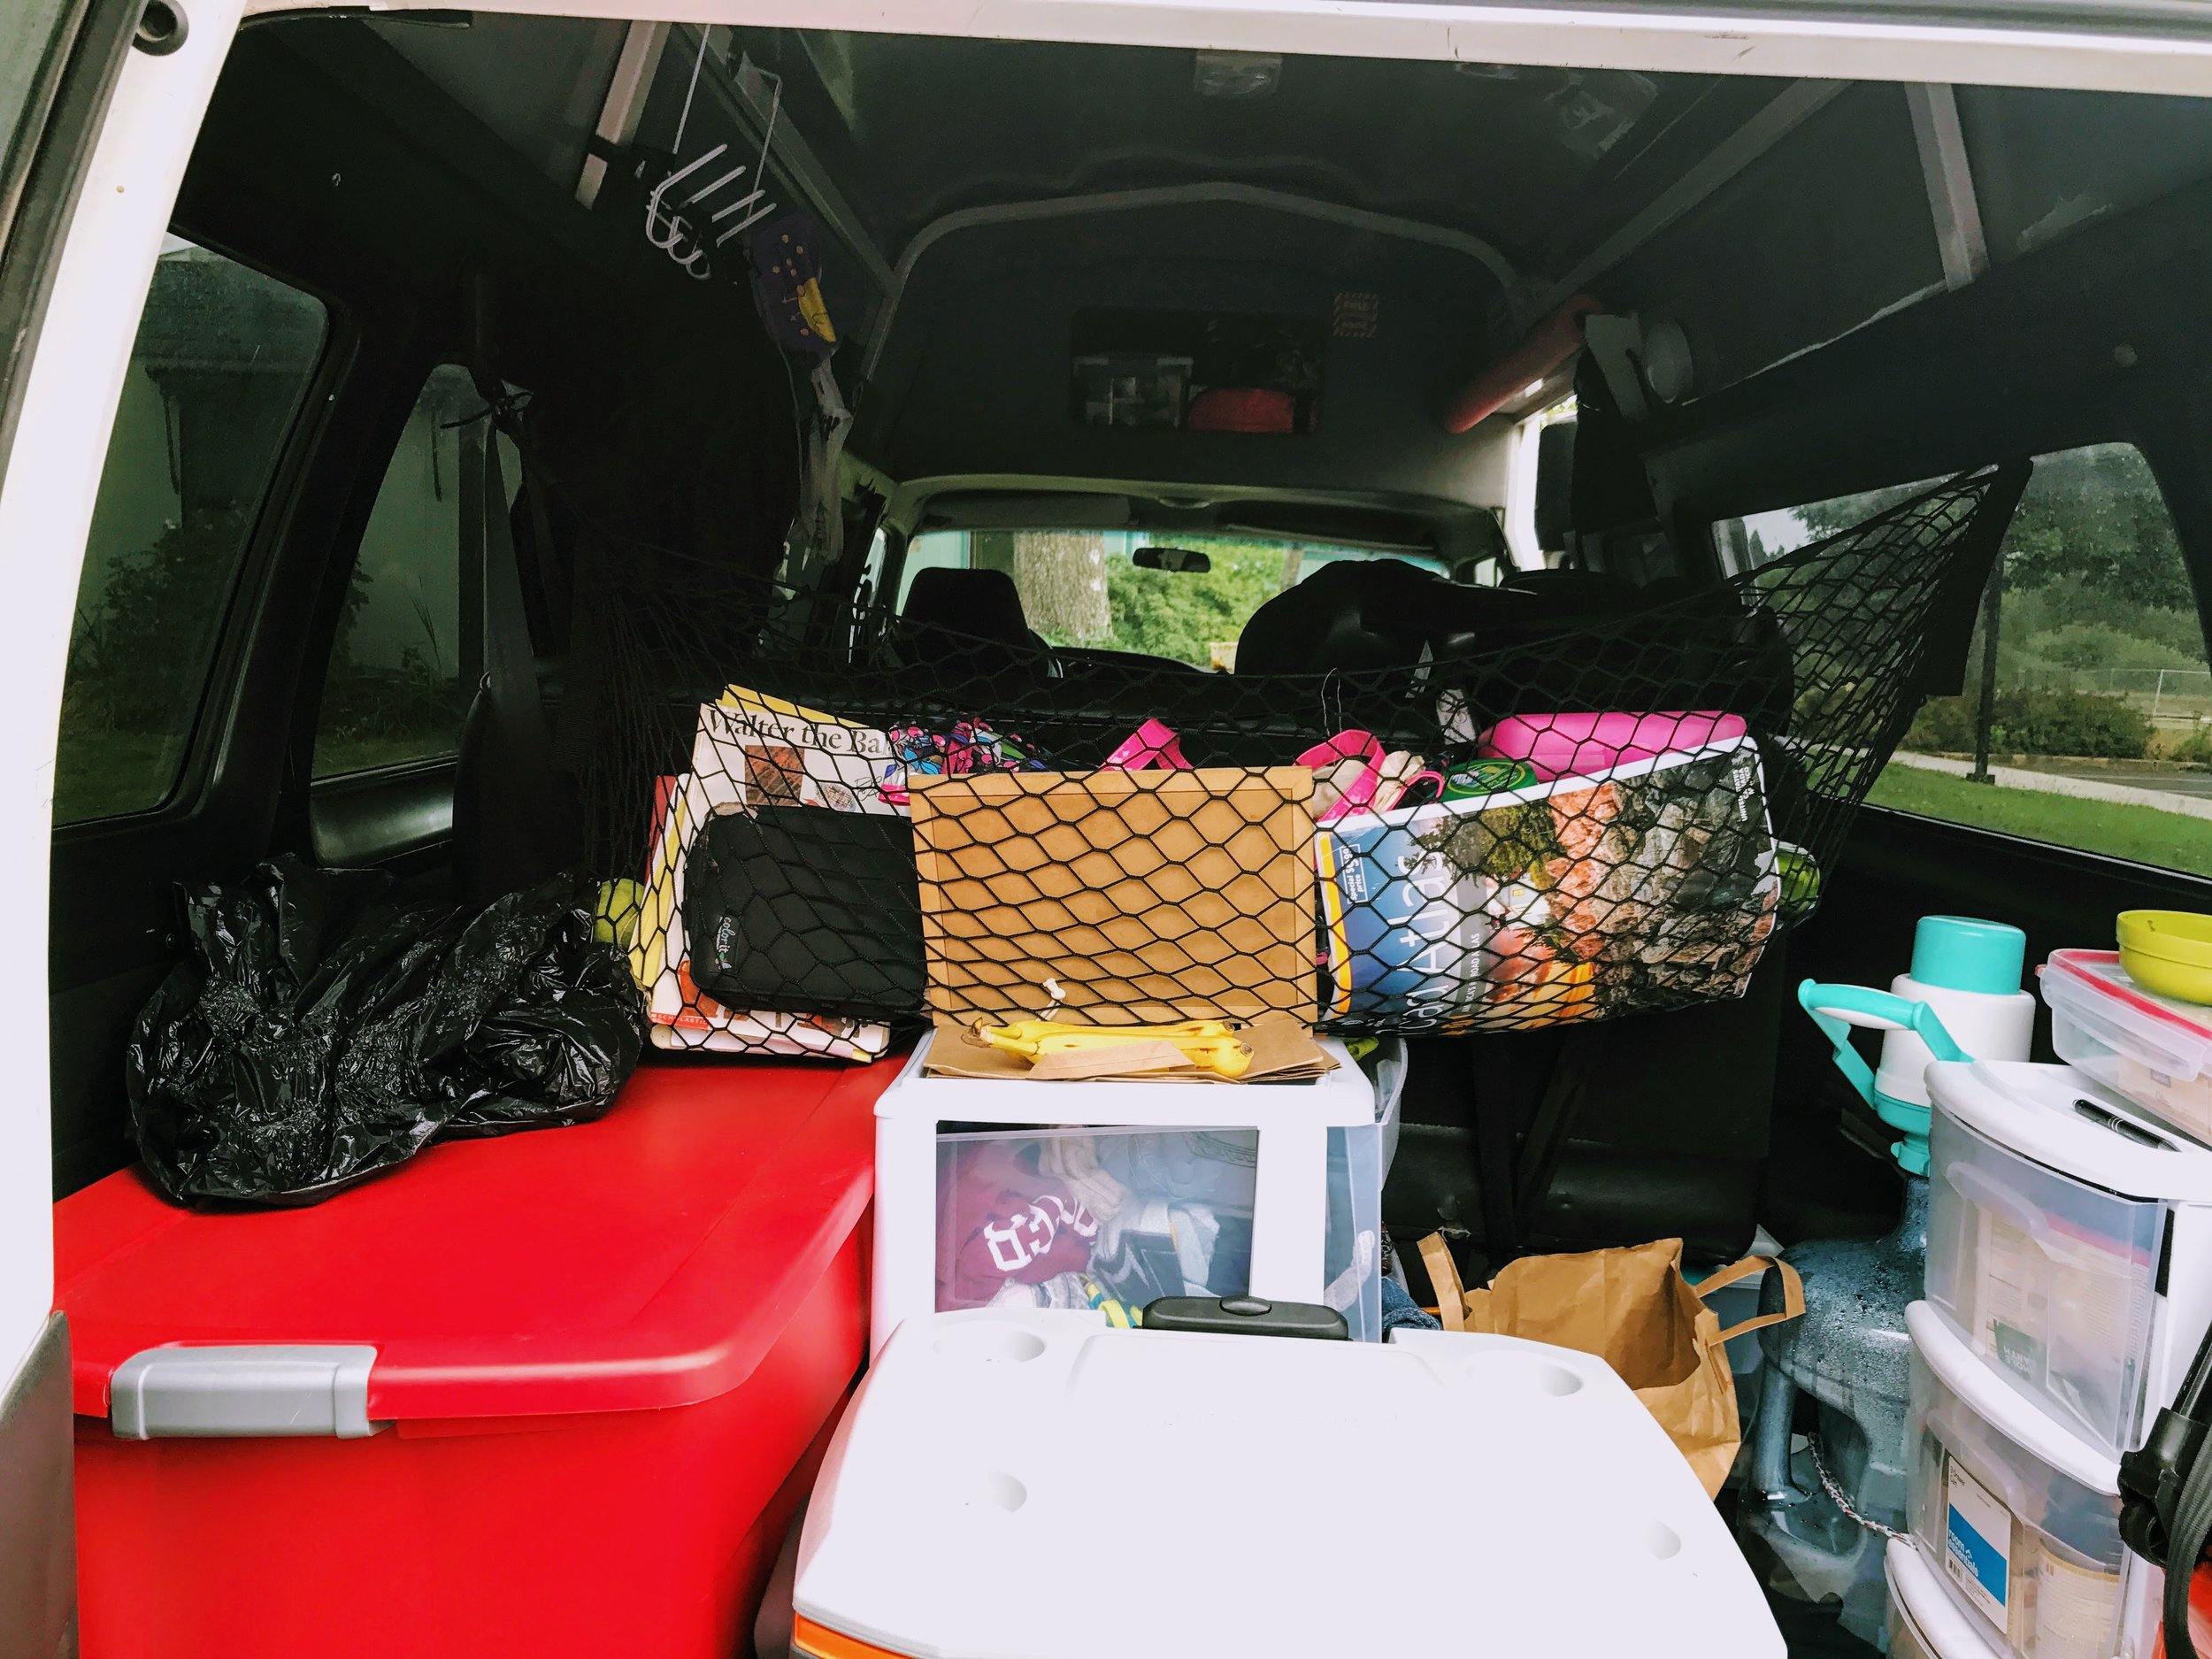 """The back of the van: The Coleman """"Fridge"""" the misc net, the food pantry, clothing behind the fridge, the dirty laundry bag, and the infamous red tote. This part of the van gets messy so quickly."""